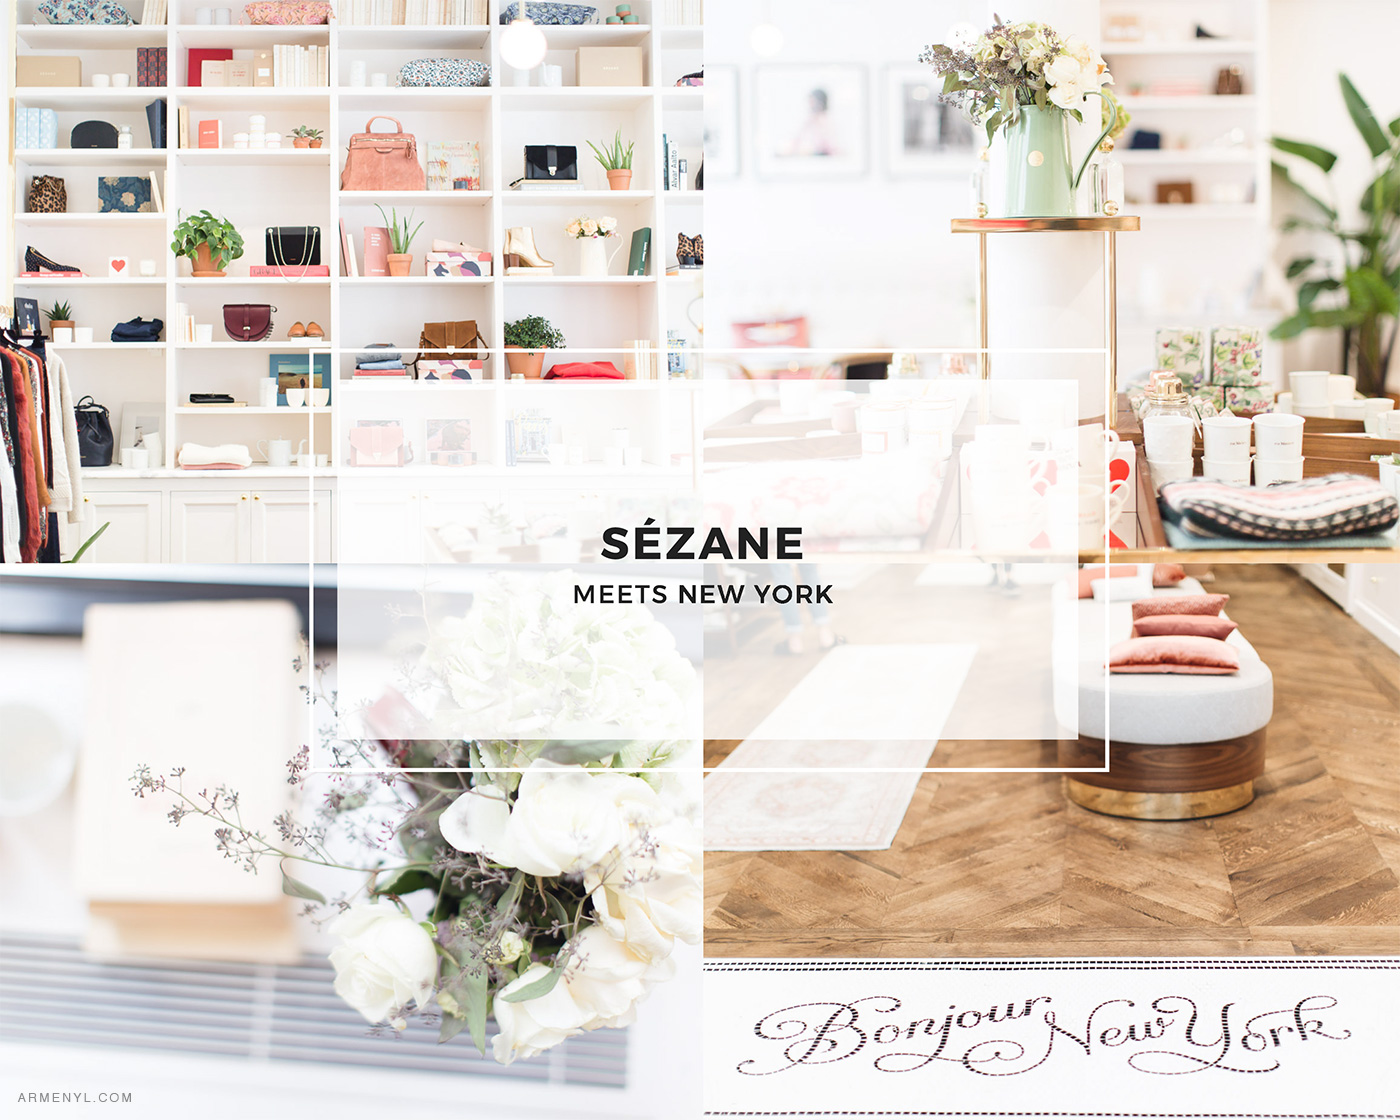 New York City Guide: the most Instagram worthy spots in NYC Sezane in New York City photo by Armenyl